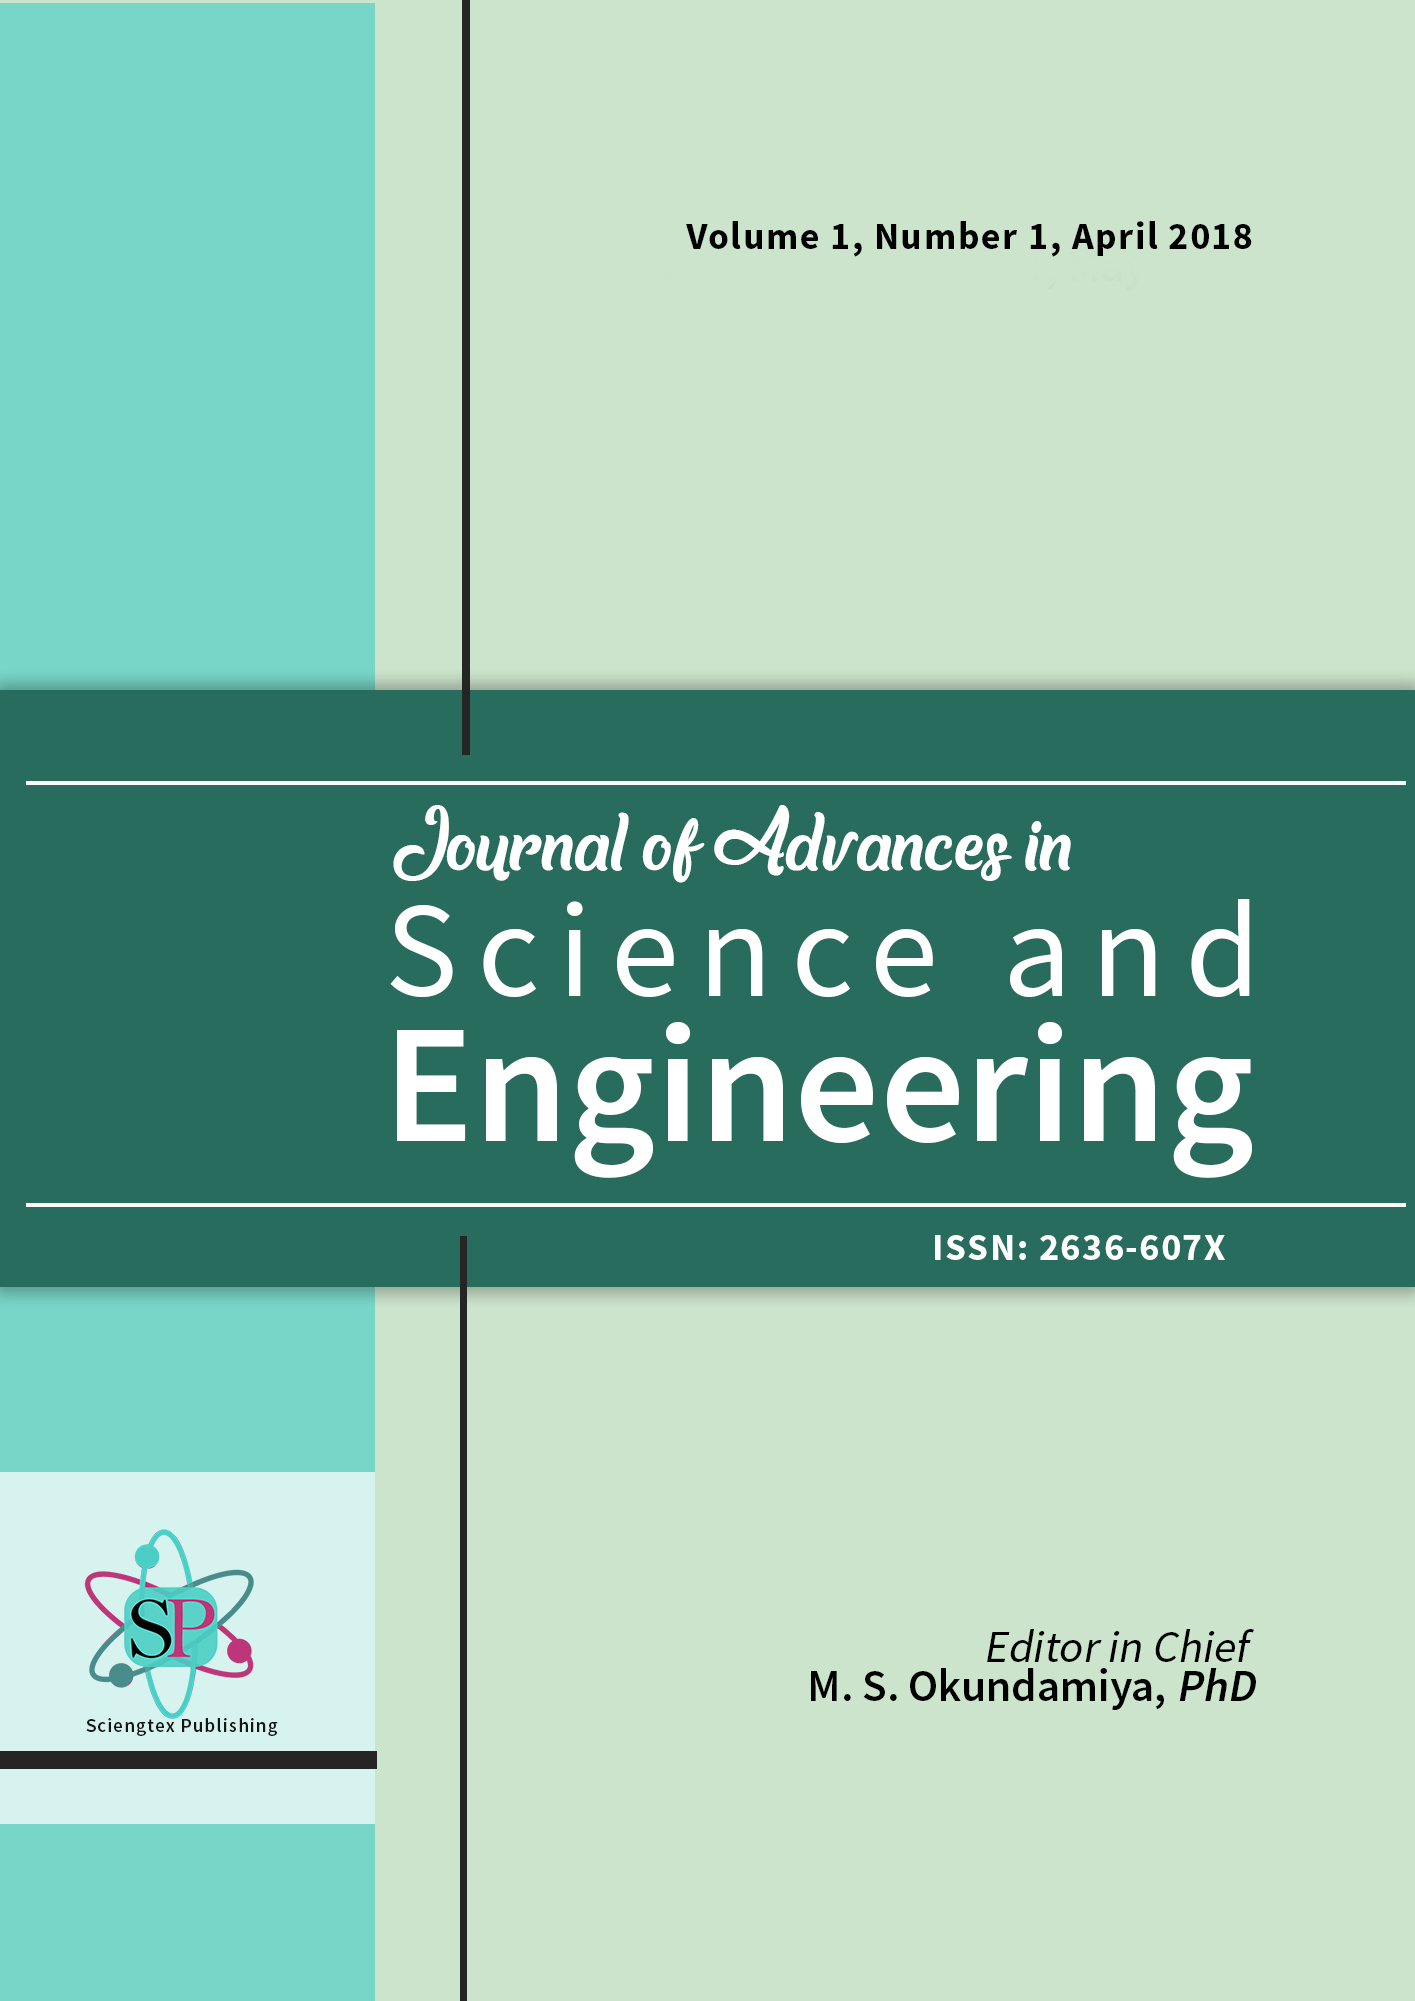 Journal of Advances in Science and Engineering